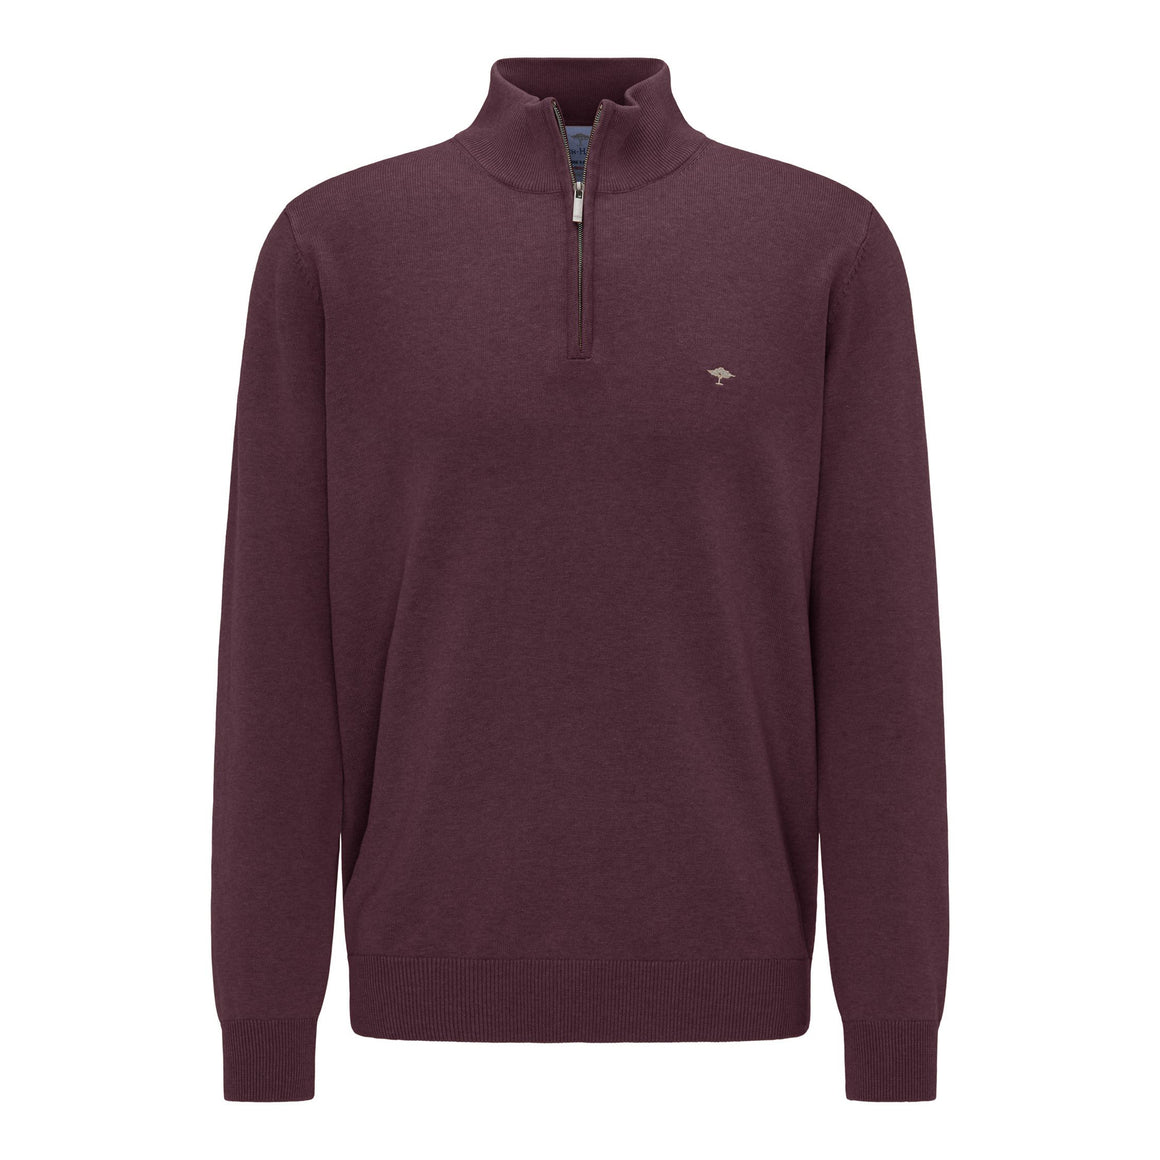 Superfine Cotton Troyer Zip Sweater for Men in Amerena